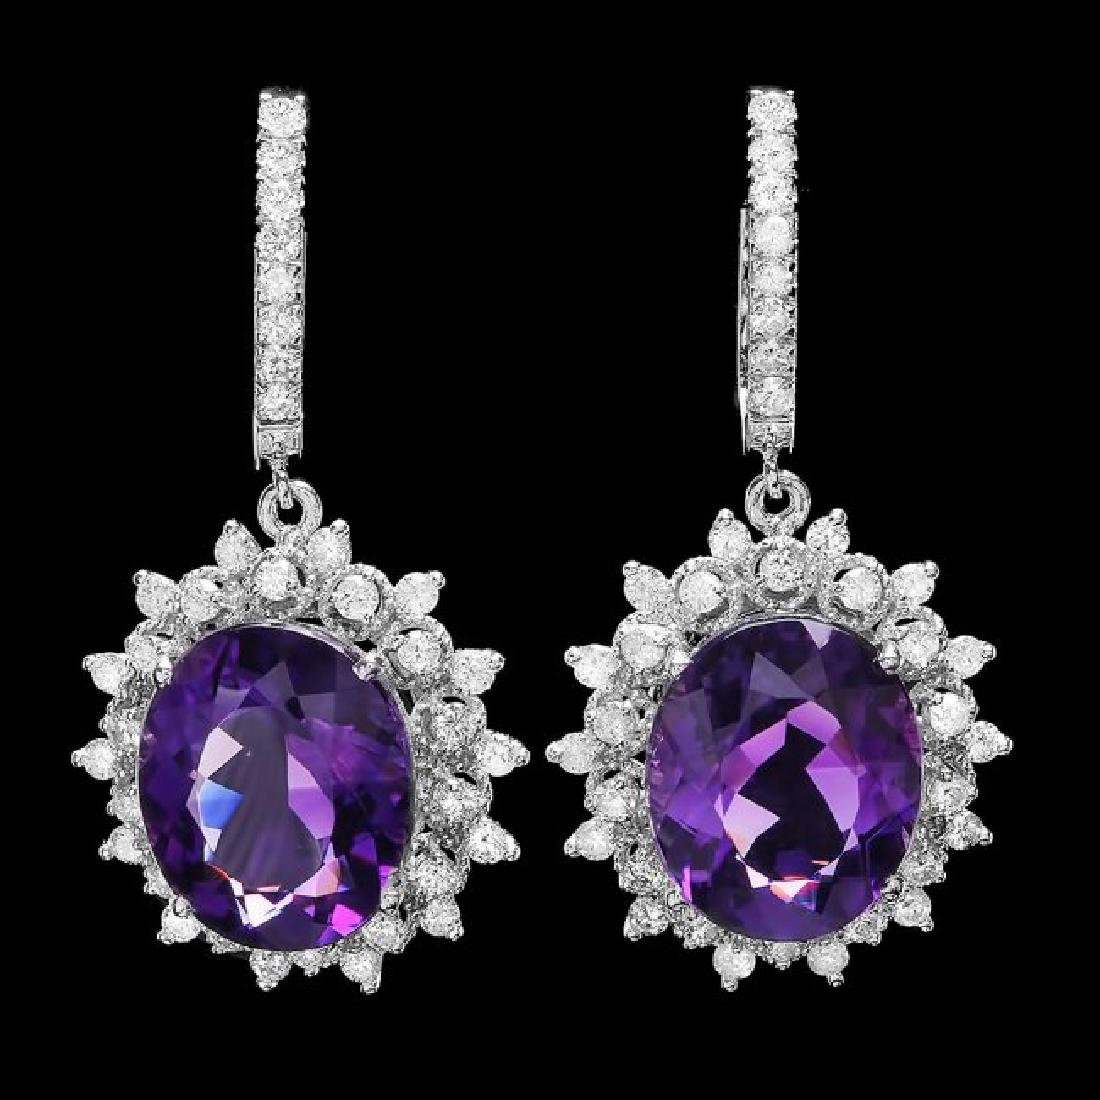 14k Gold 15.00ct Amethyst 2.00ct Diamond Earrings - 2